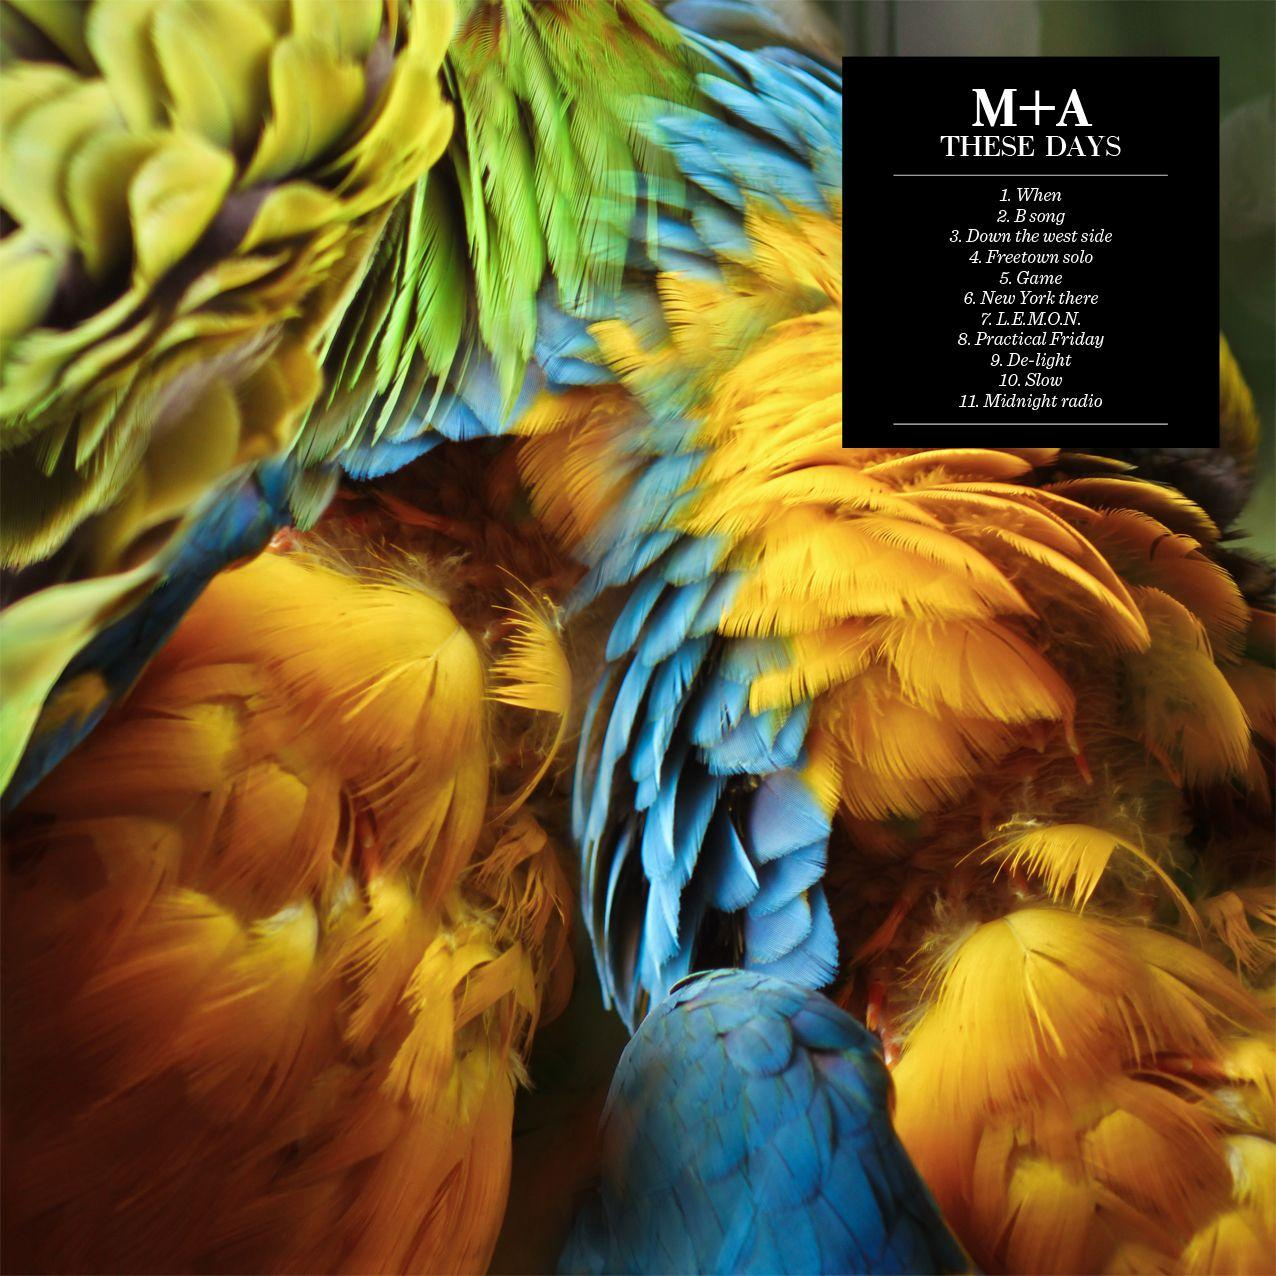 M+A These Days Artwork